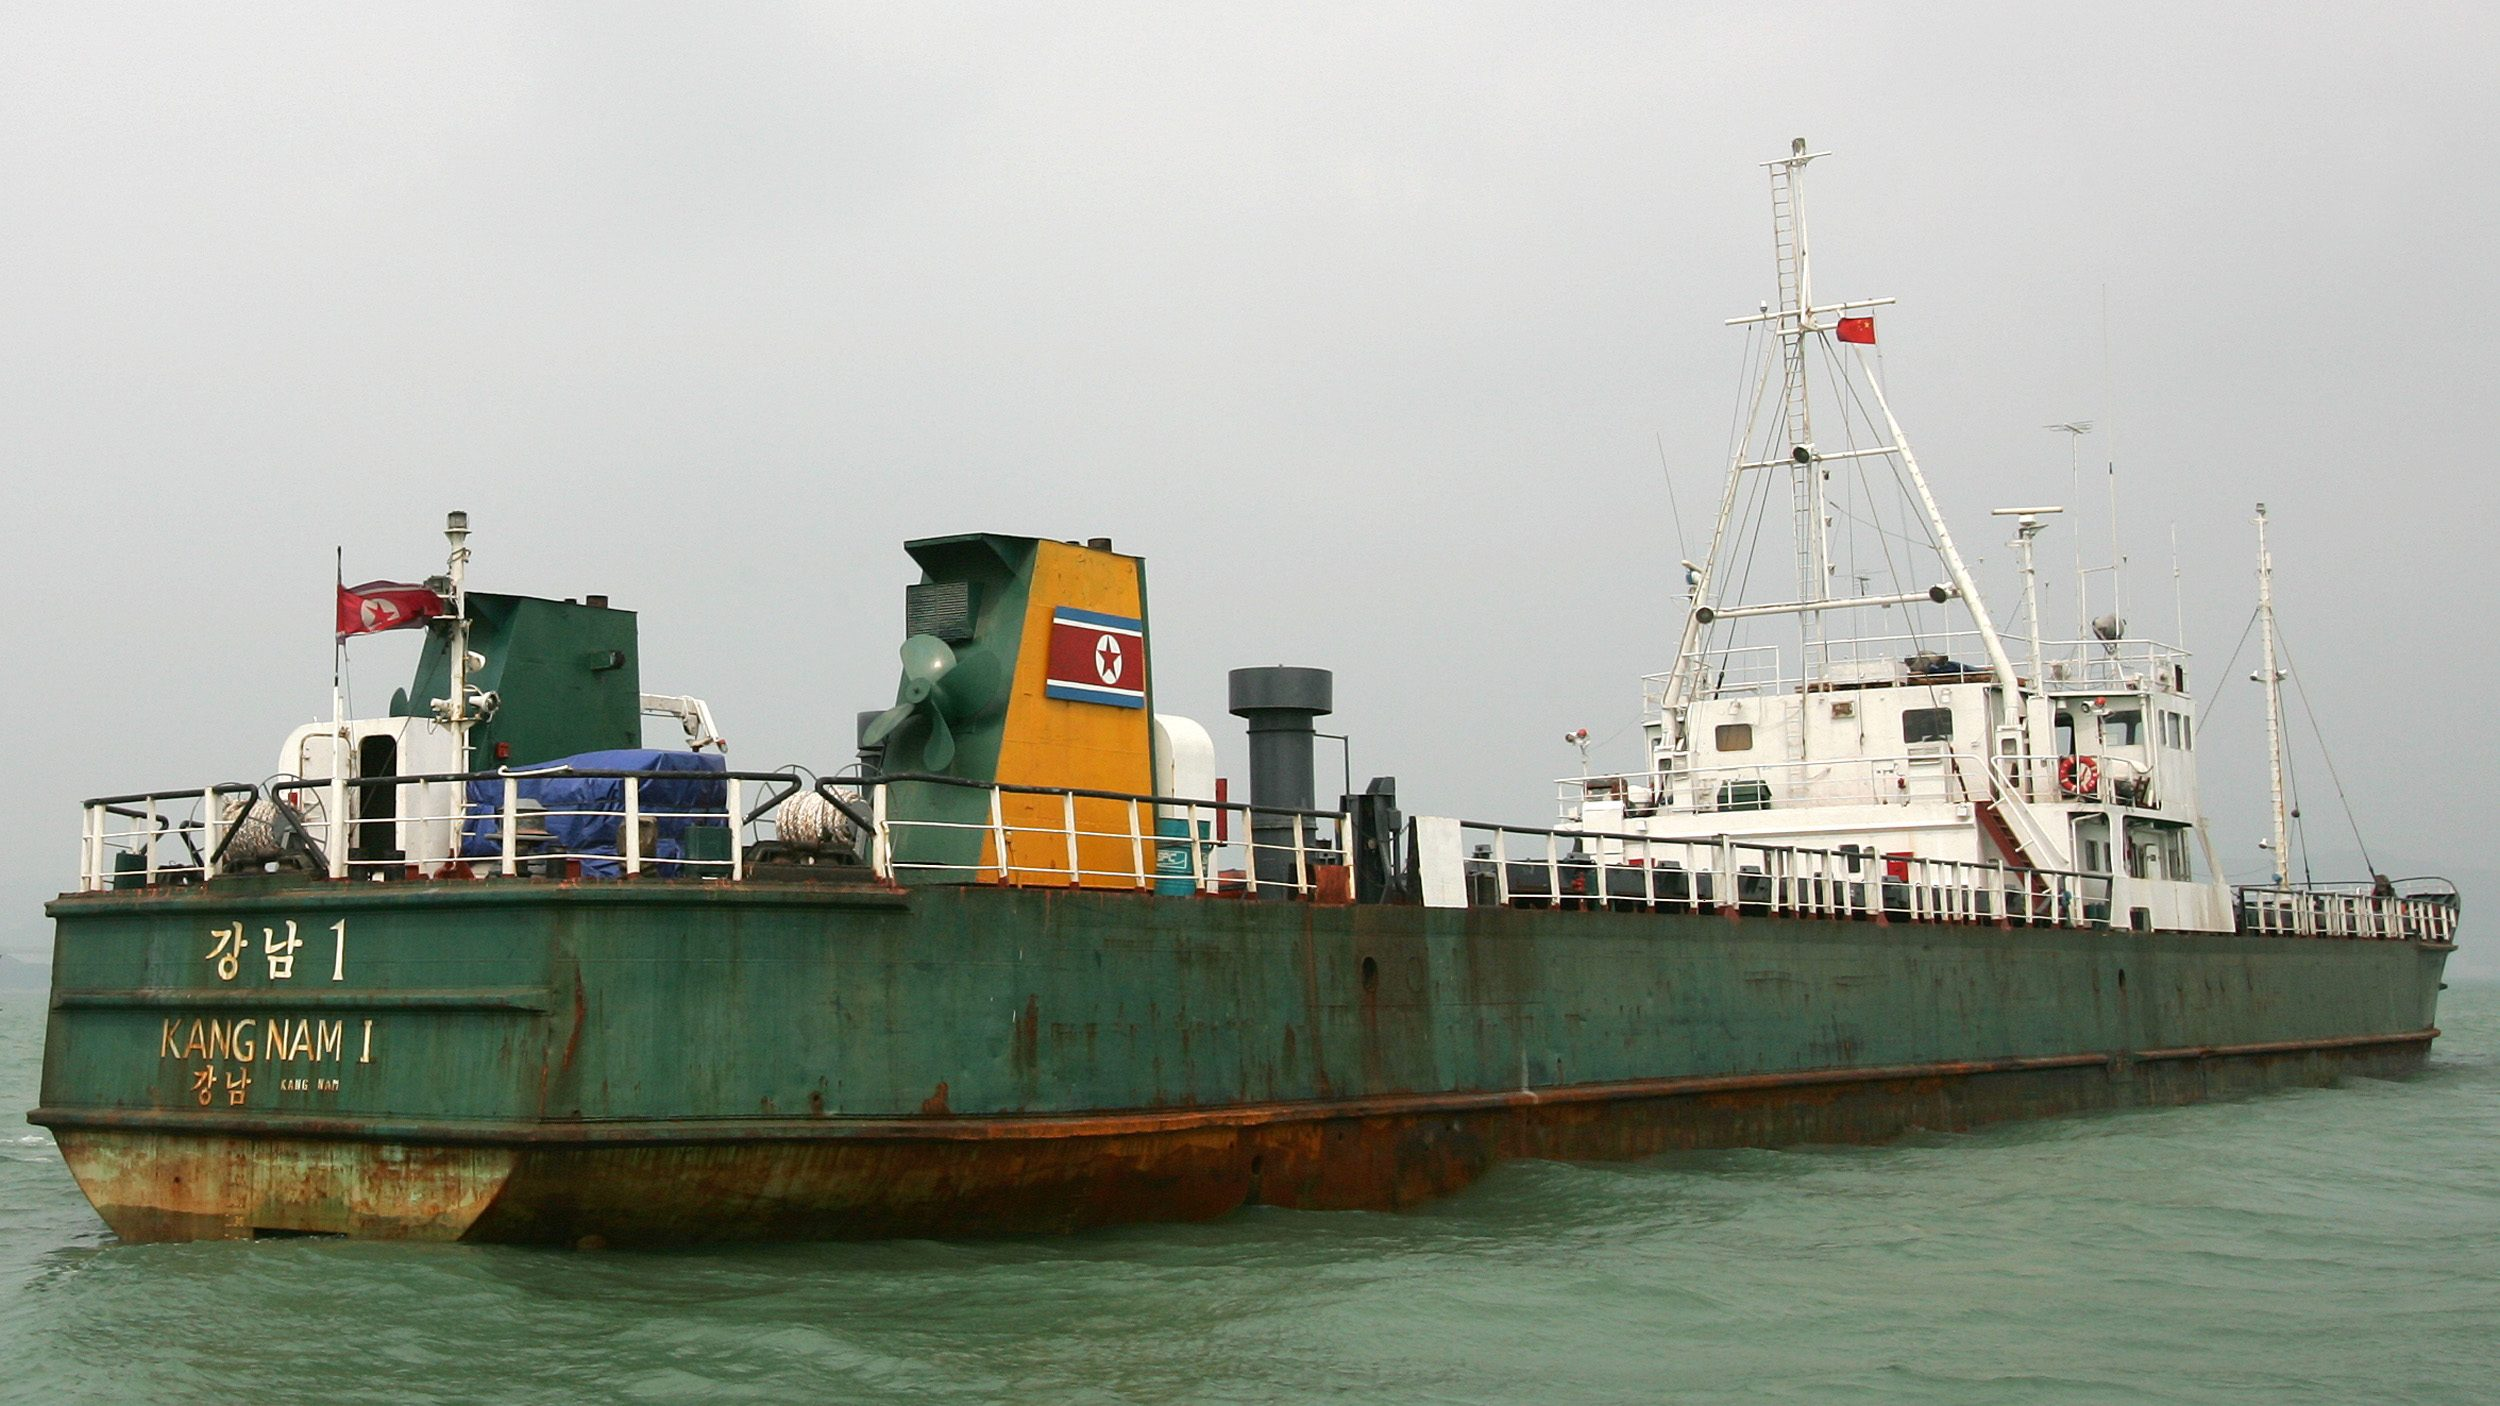 The Kang Nam I, a North Korean 2,035-tonne general cargo ship, is pictured near Lantau Island in Hong Kong in this October 24, 2006 file photo. The U.S. Navy is monitoring a vessel called Kang Nam -- not confirmed to be the same ship that was detained in Hong Kong in 2006 for suspected safety violations -- under new U.N. sanctions that bar North Korea from exporting weapons, including missile parts and nuclear materials June 20, 2009.